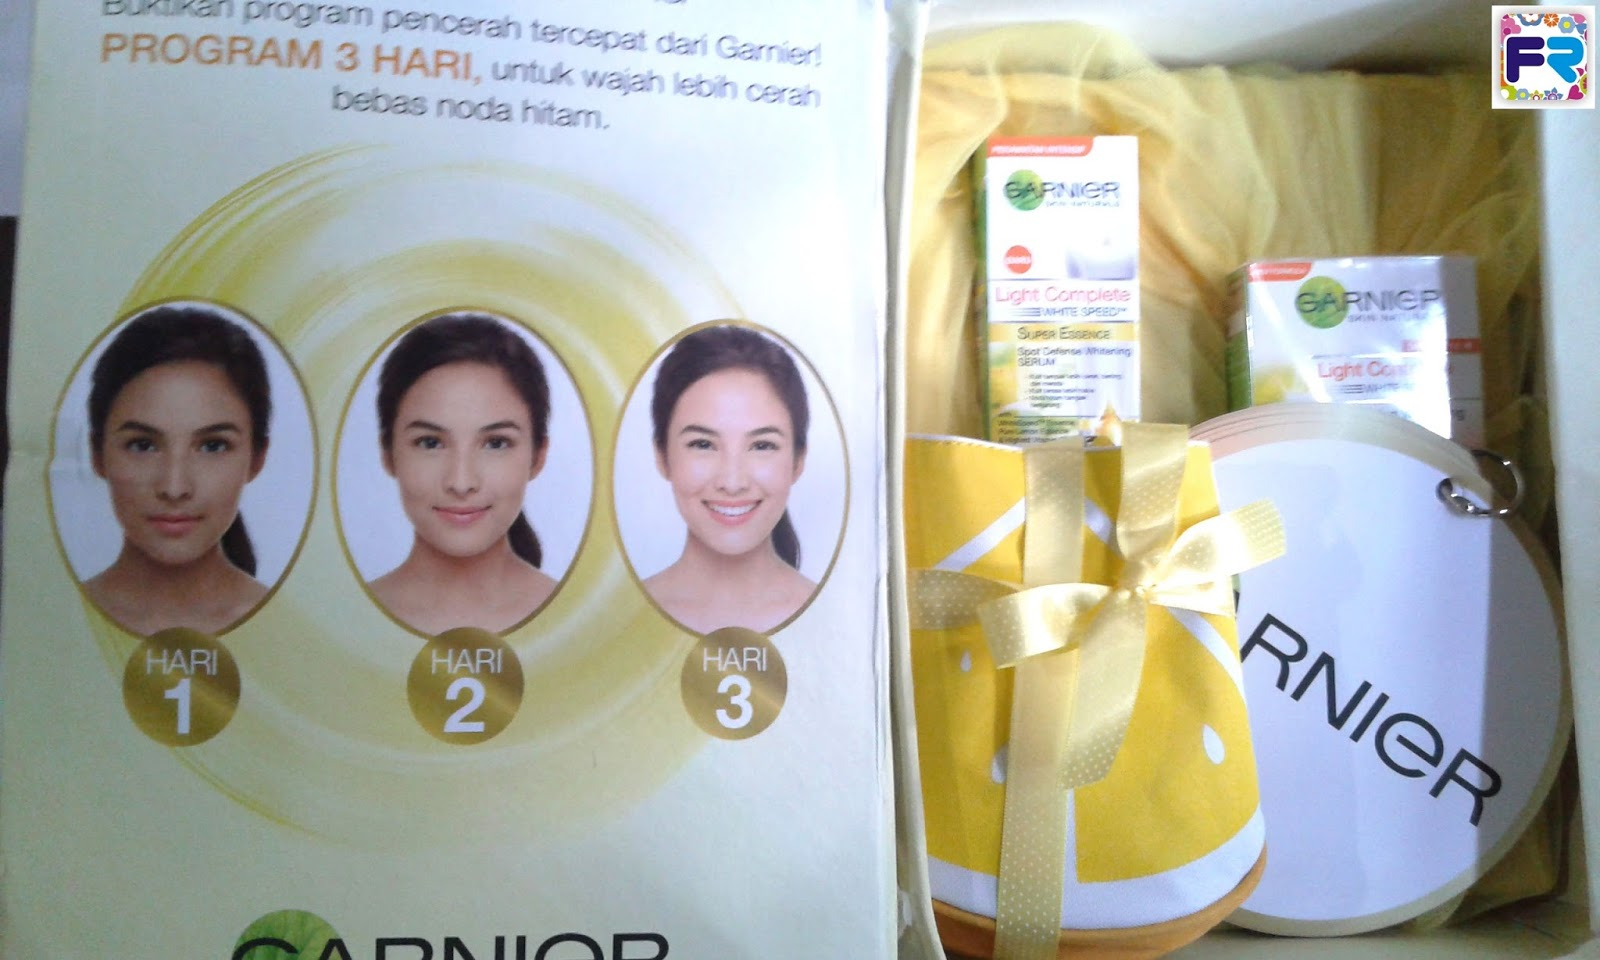 Program 3 Hari Pakai Produk Baru Garnier Light Complete Series Paket White Speed